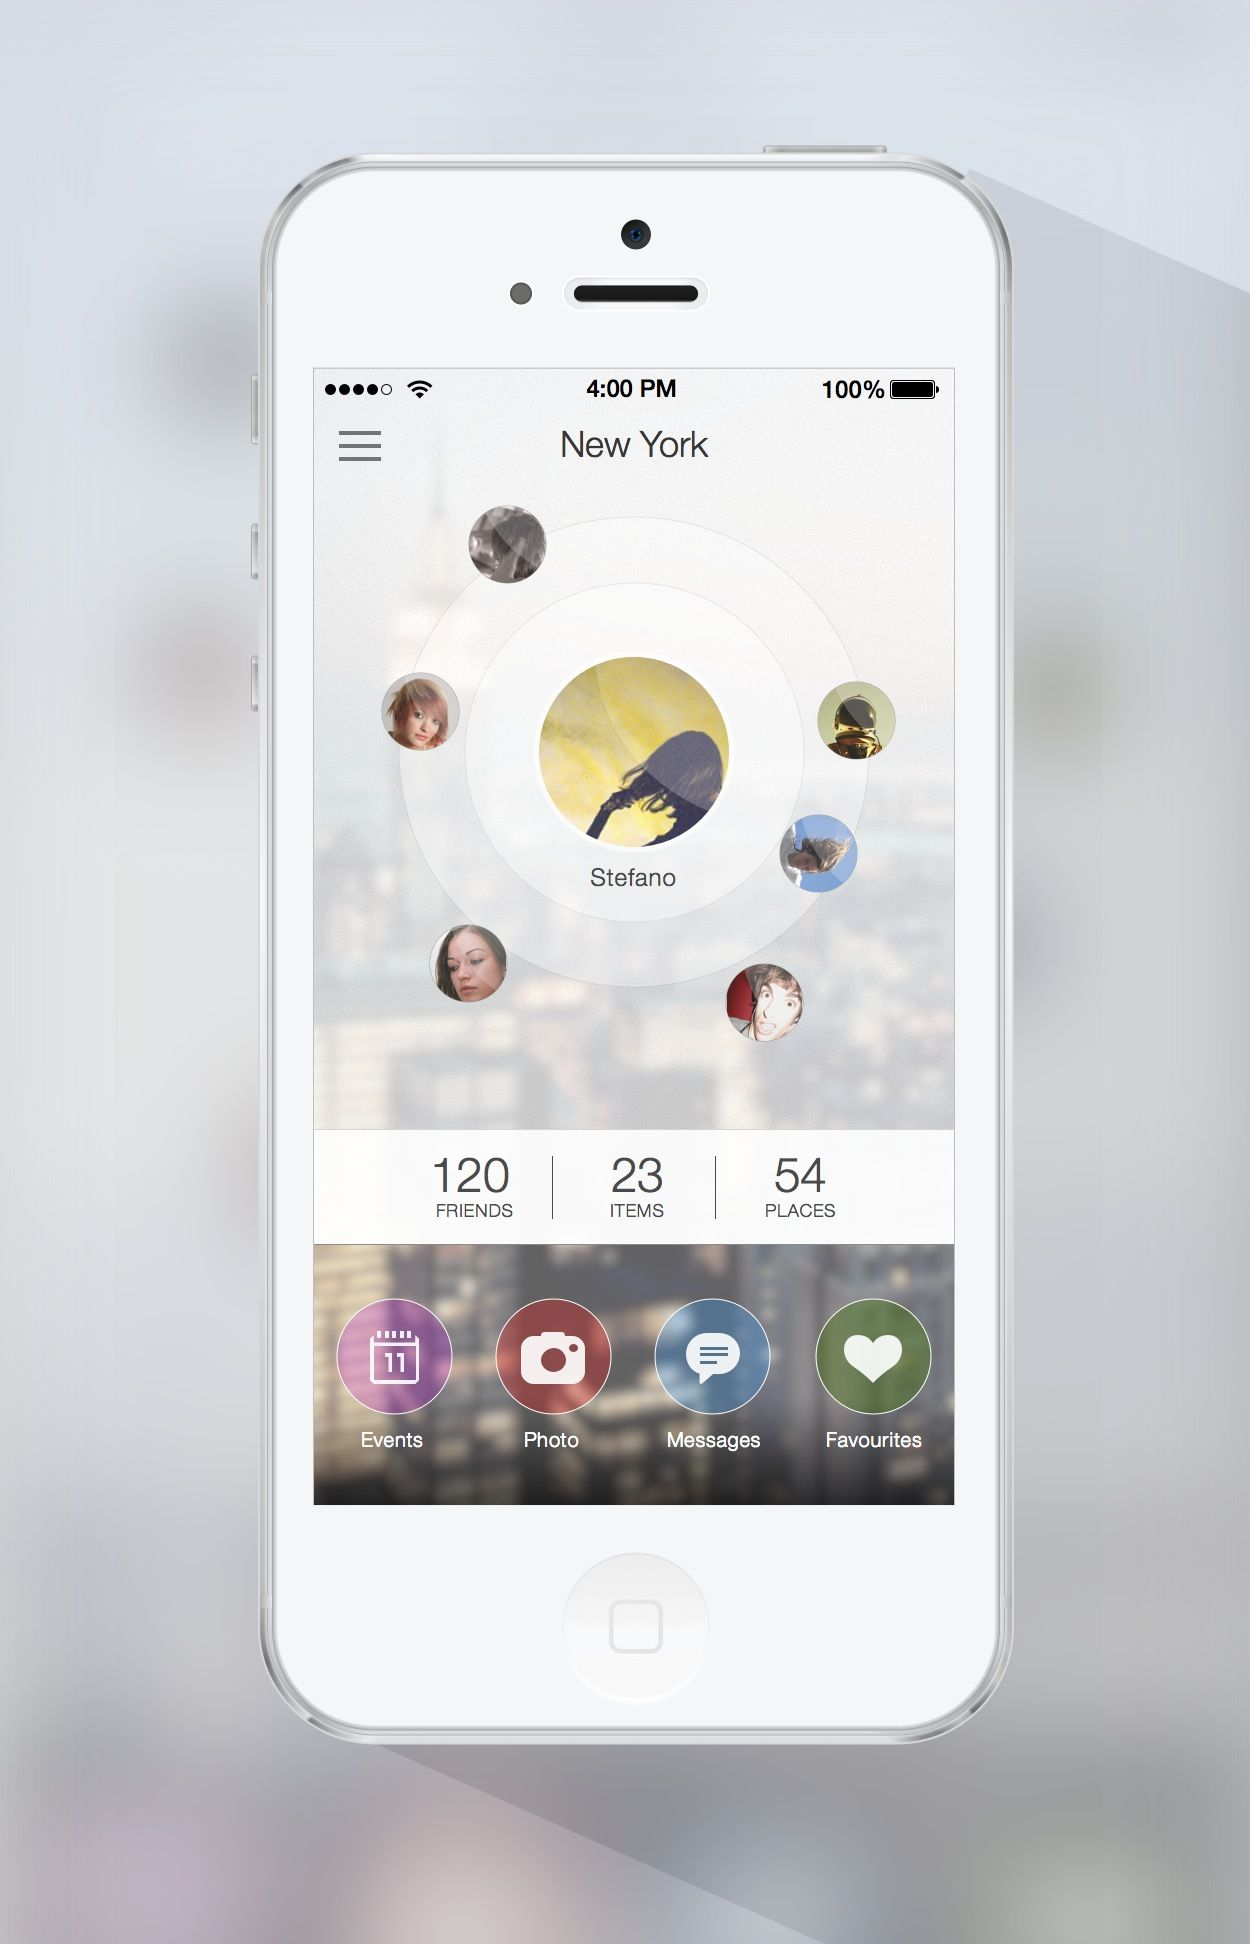 Apple. iPhone. iOS. People. Circle. App. Friends. Places